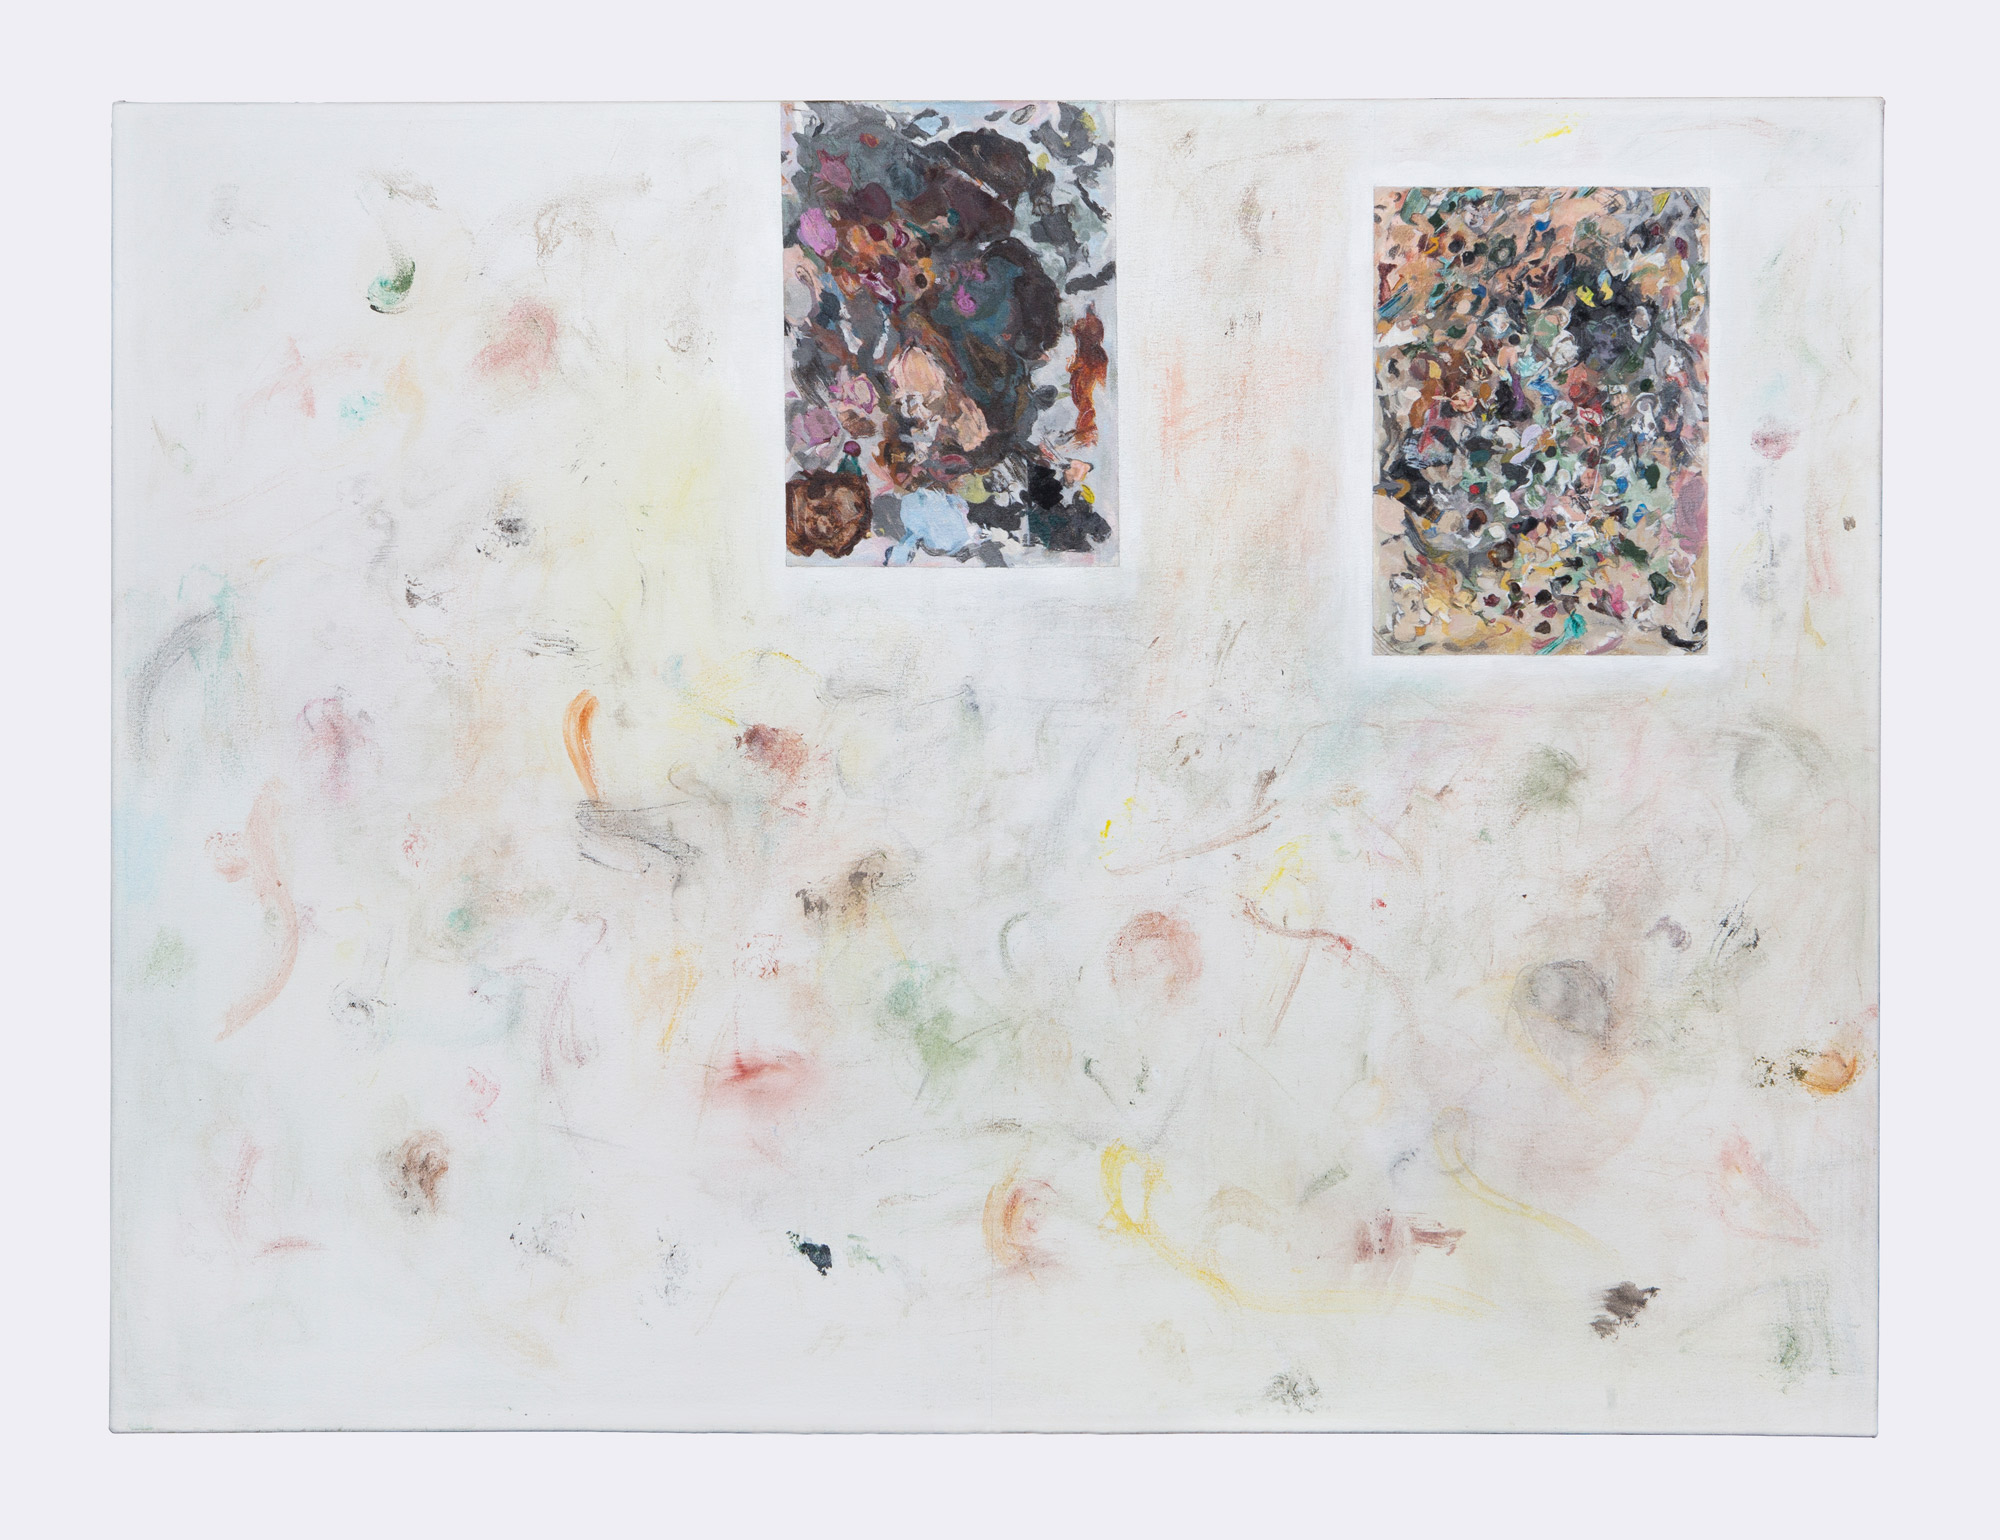 Stuart Brisley: Palettes from The Museum of Ordure 2020 Acrylic on gesso on canvas 92 cm x 122 cm